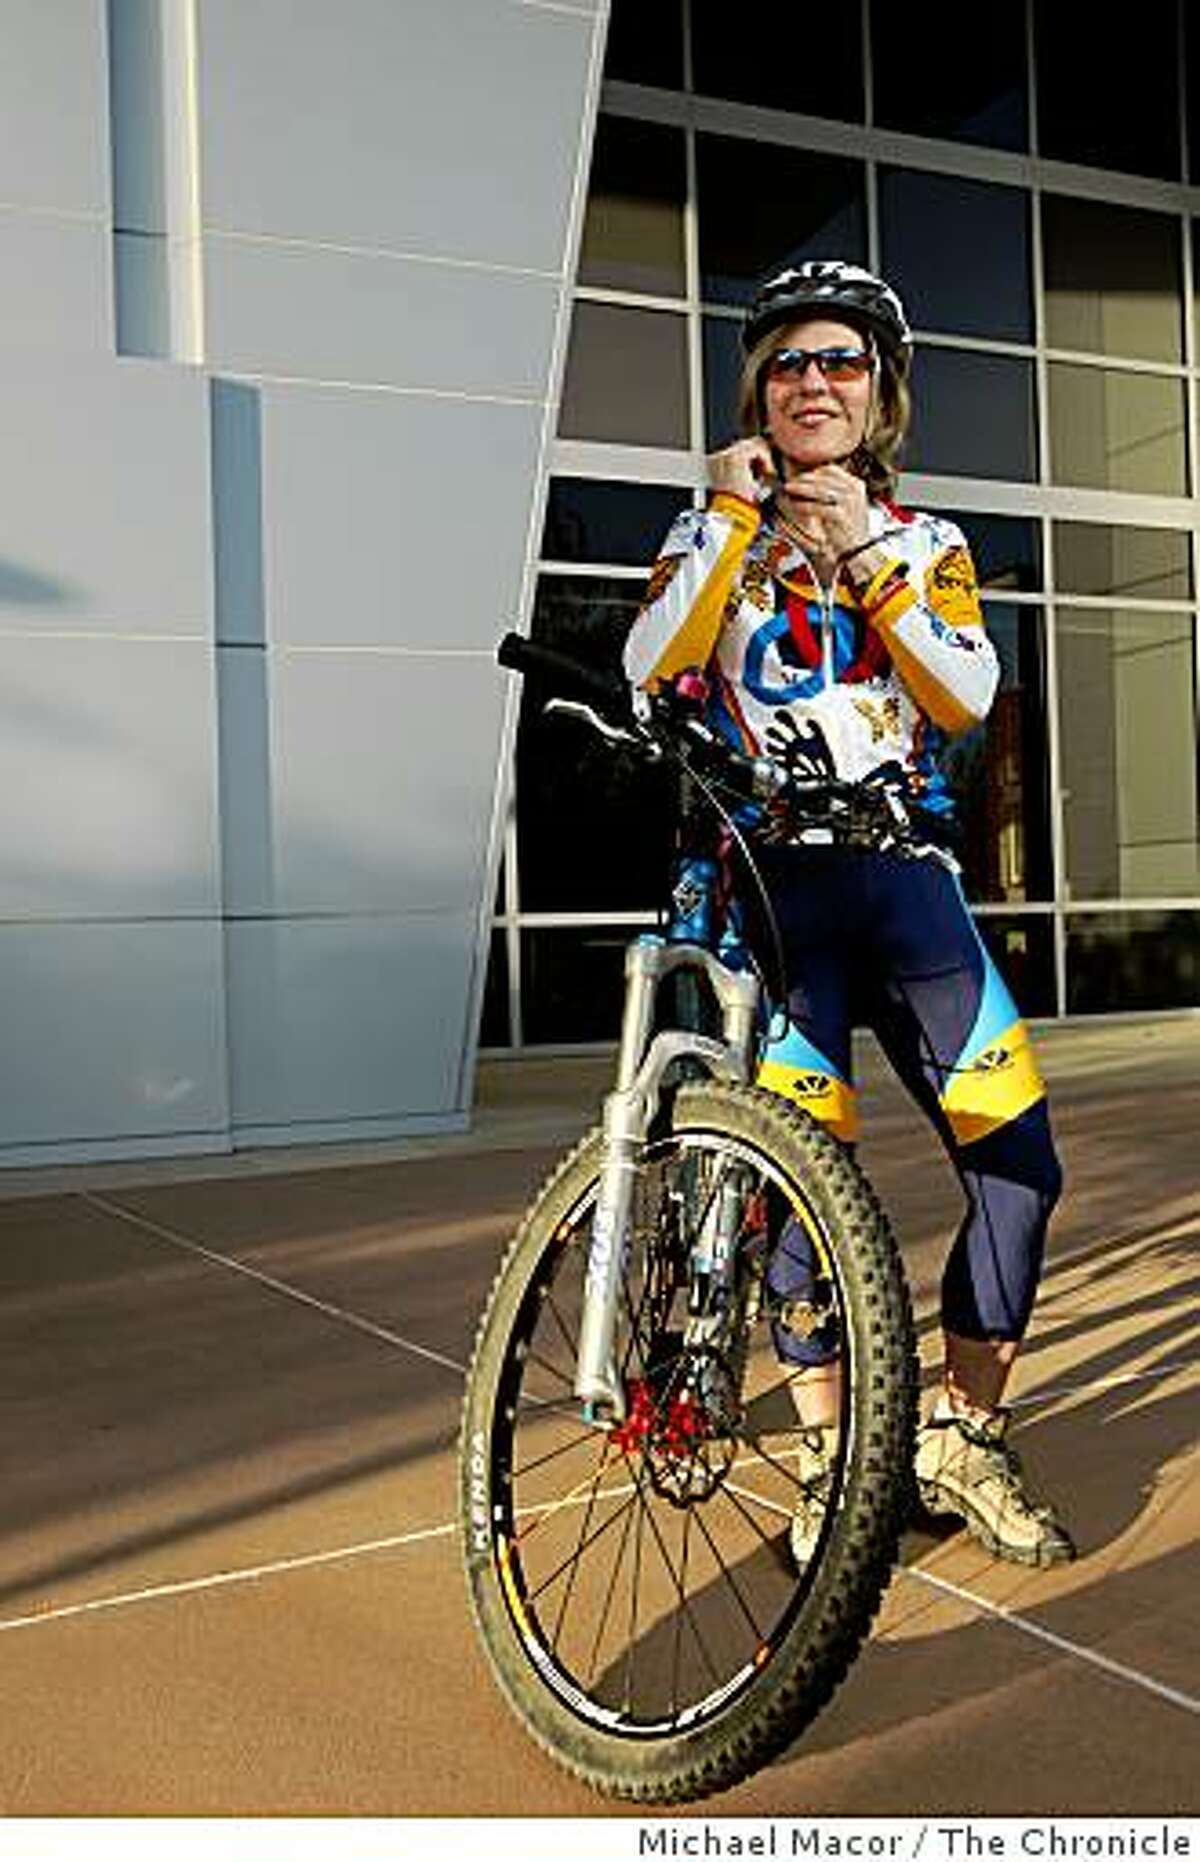 Dianne Lamendola, is an avid mountain biker who many times leaves work at the headquarters of Safeway Food Stores in Pleasanton, Calif., for a ride up nearby Pleasanton Ridge Regional Park as part of her workouts. In front of the corporate headquarters building on Dec. 5, 2008.